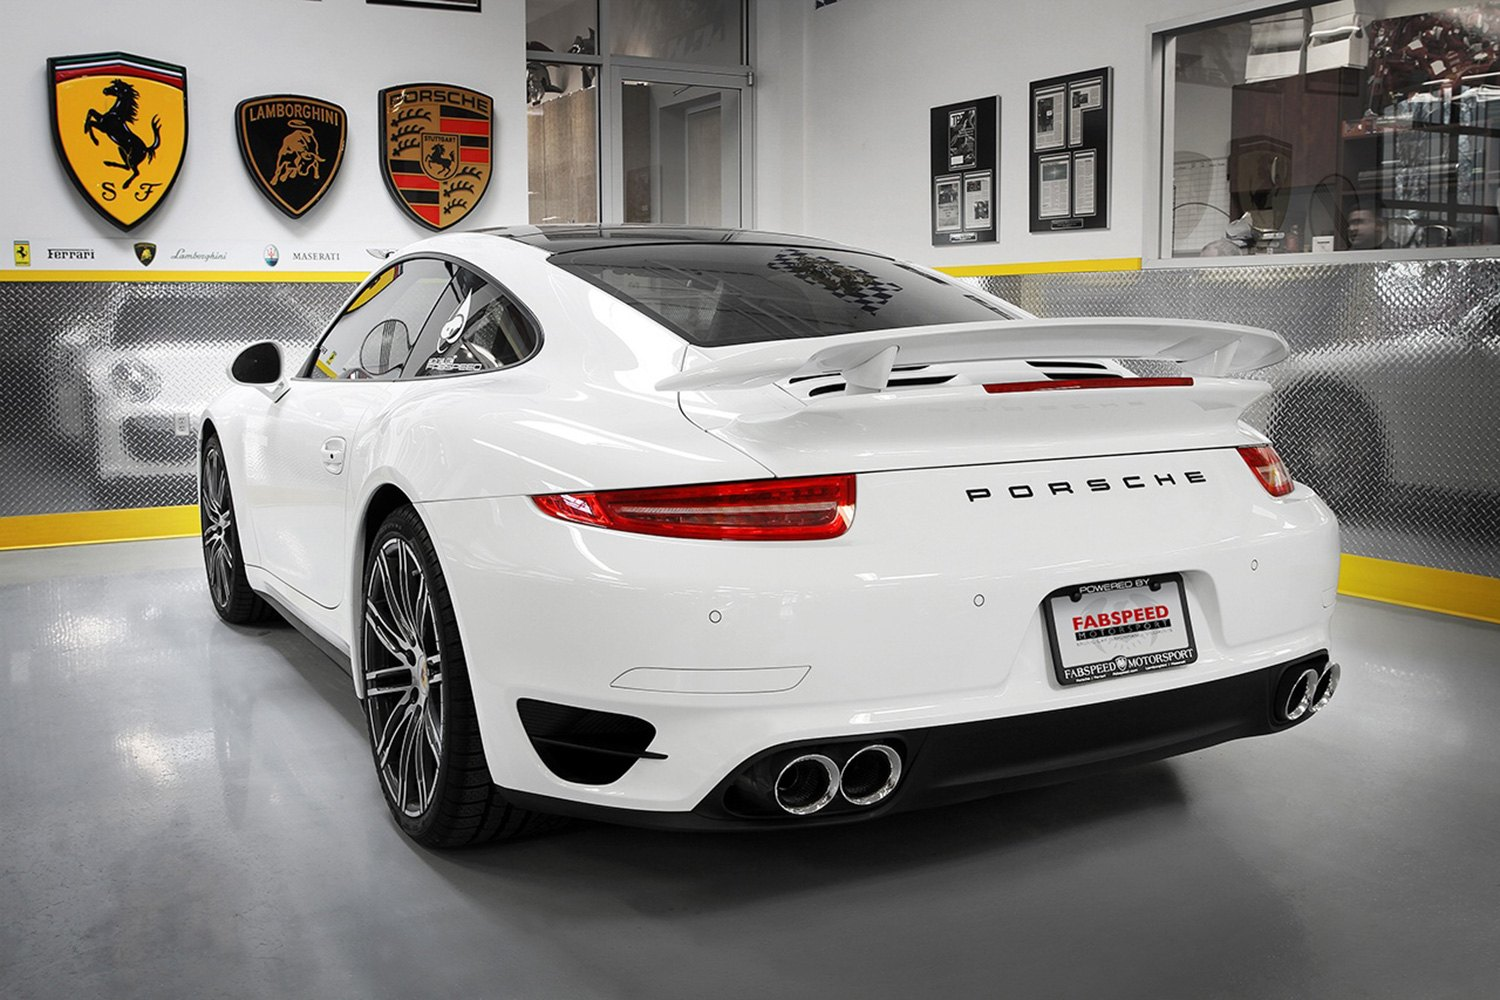 Fabspeed 174 Porsche 911 Series Turbo Turbo S With